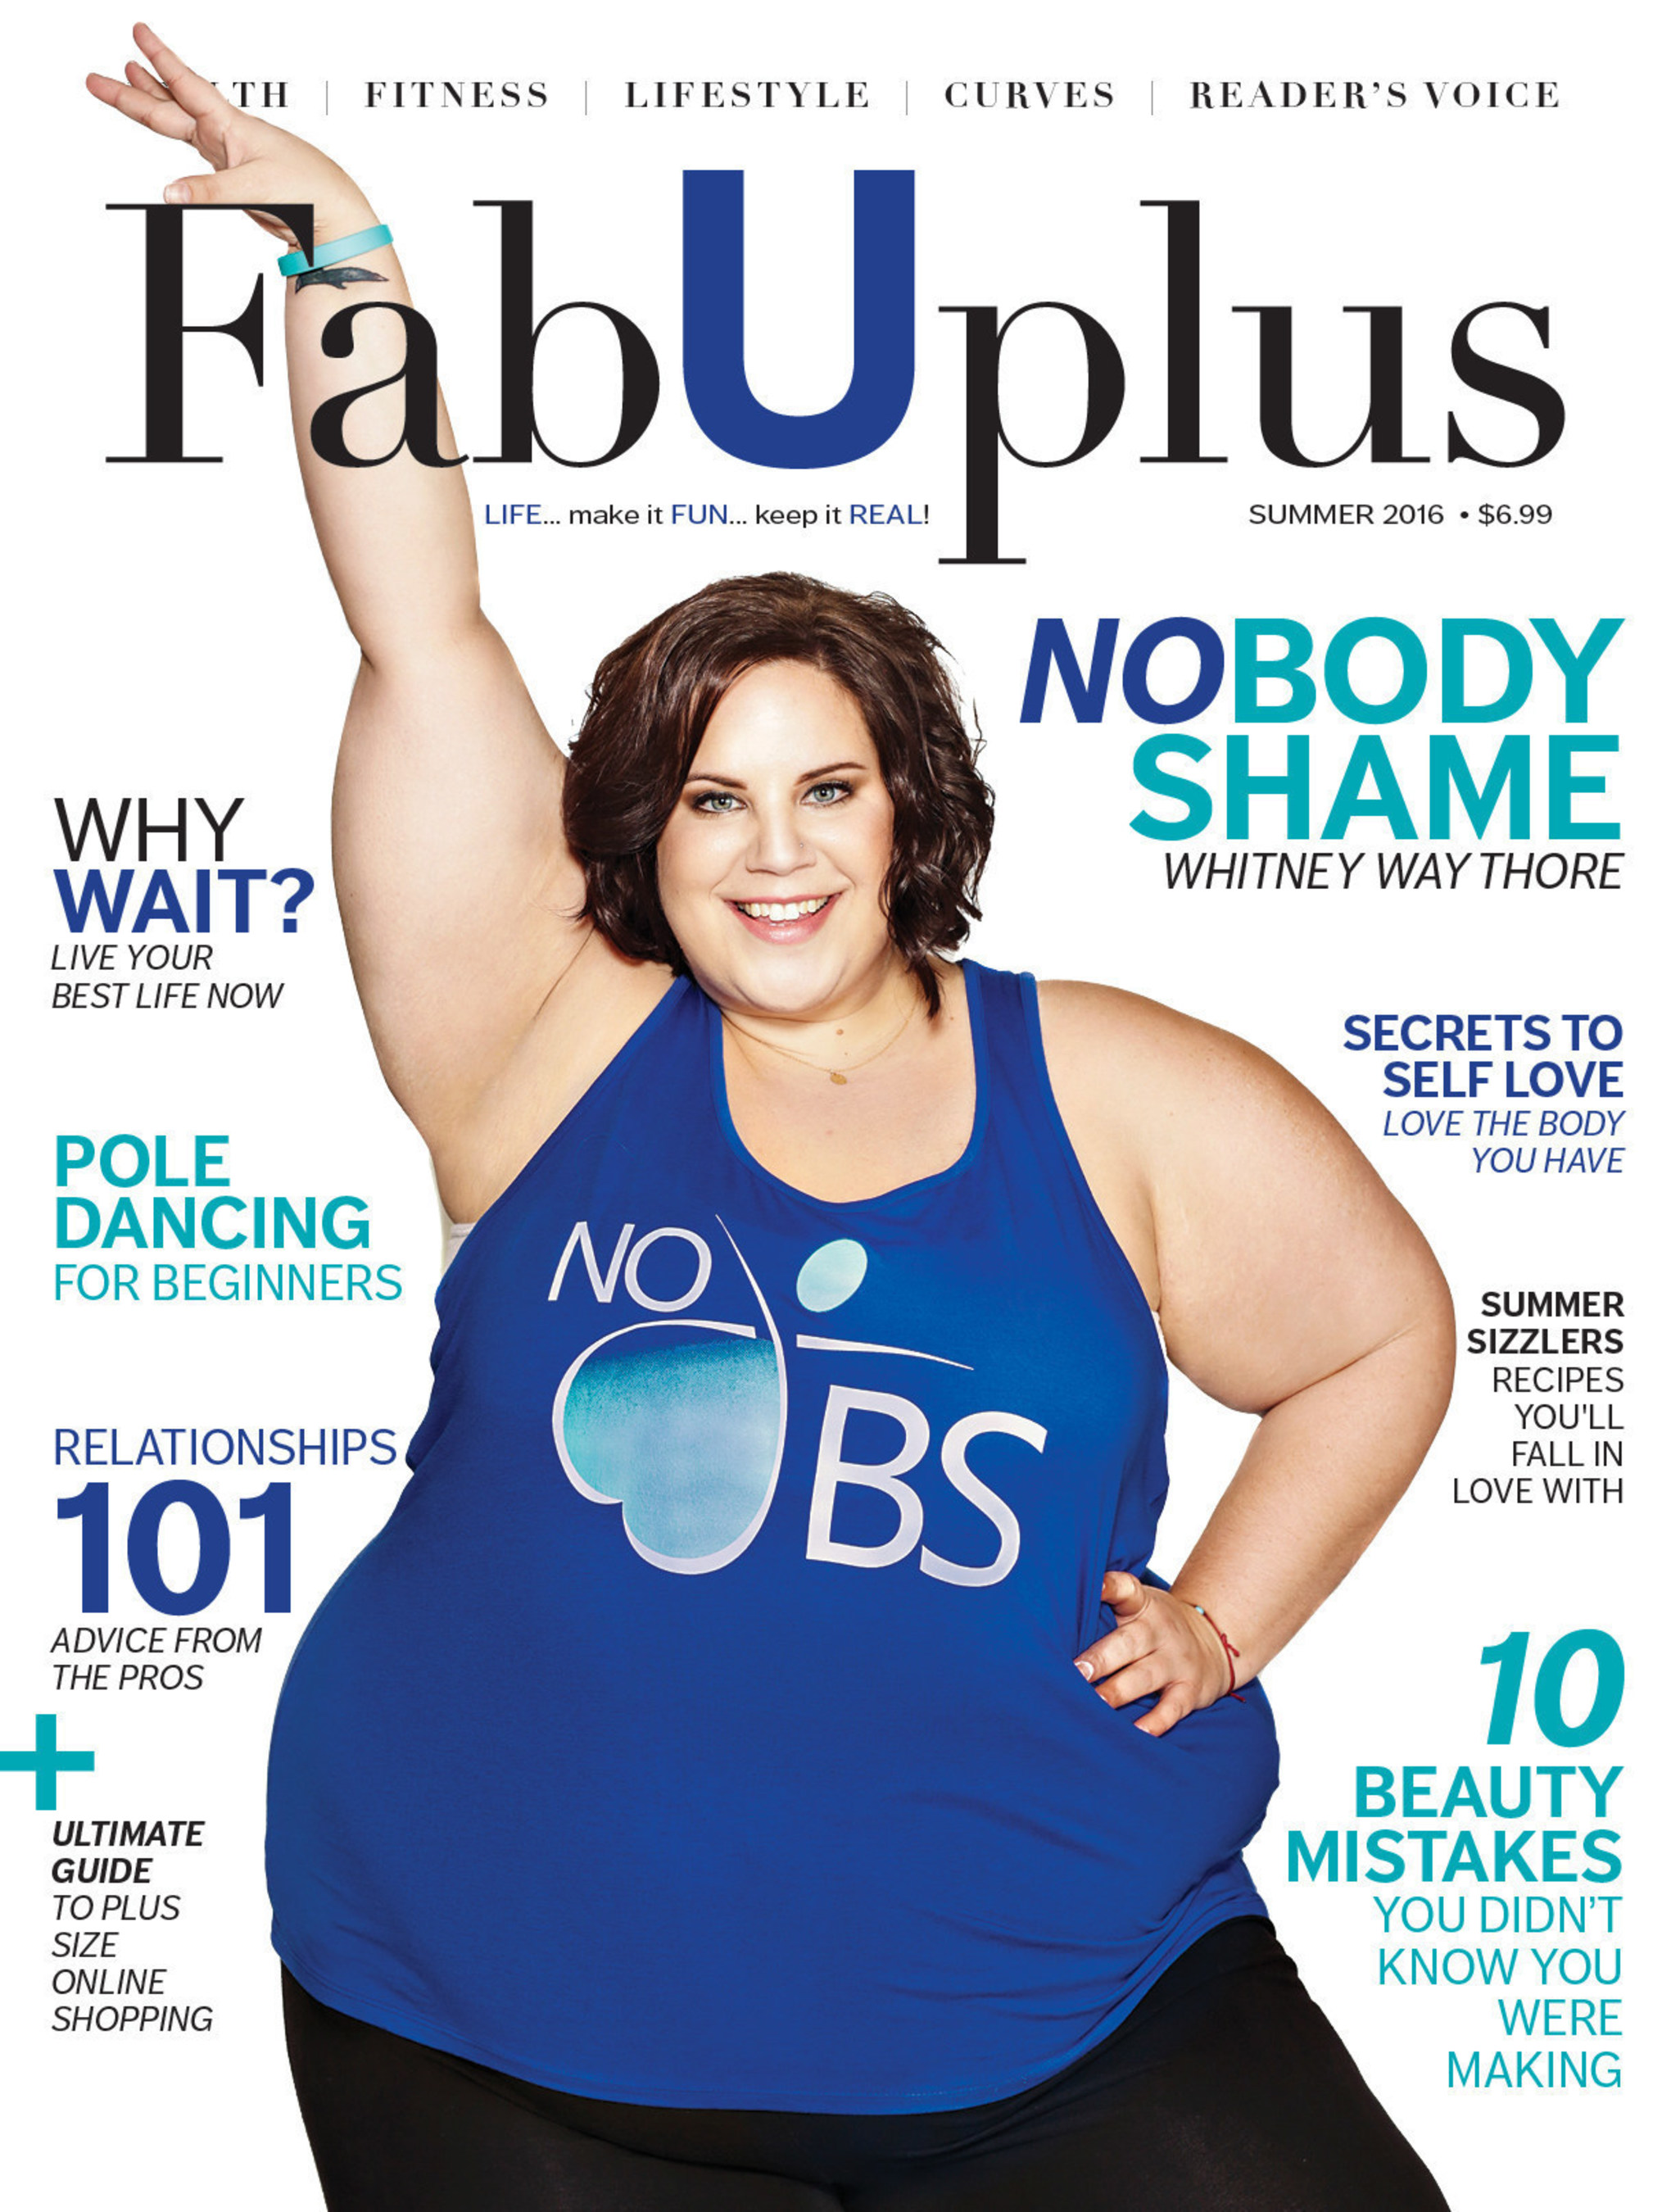 North America's Ground Breaking Plus Sized Health, Fitness & Lifestyle Magazine Is Now Here